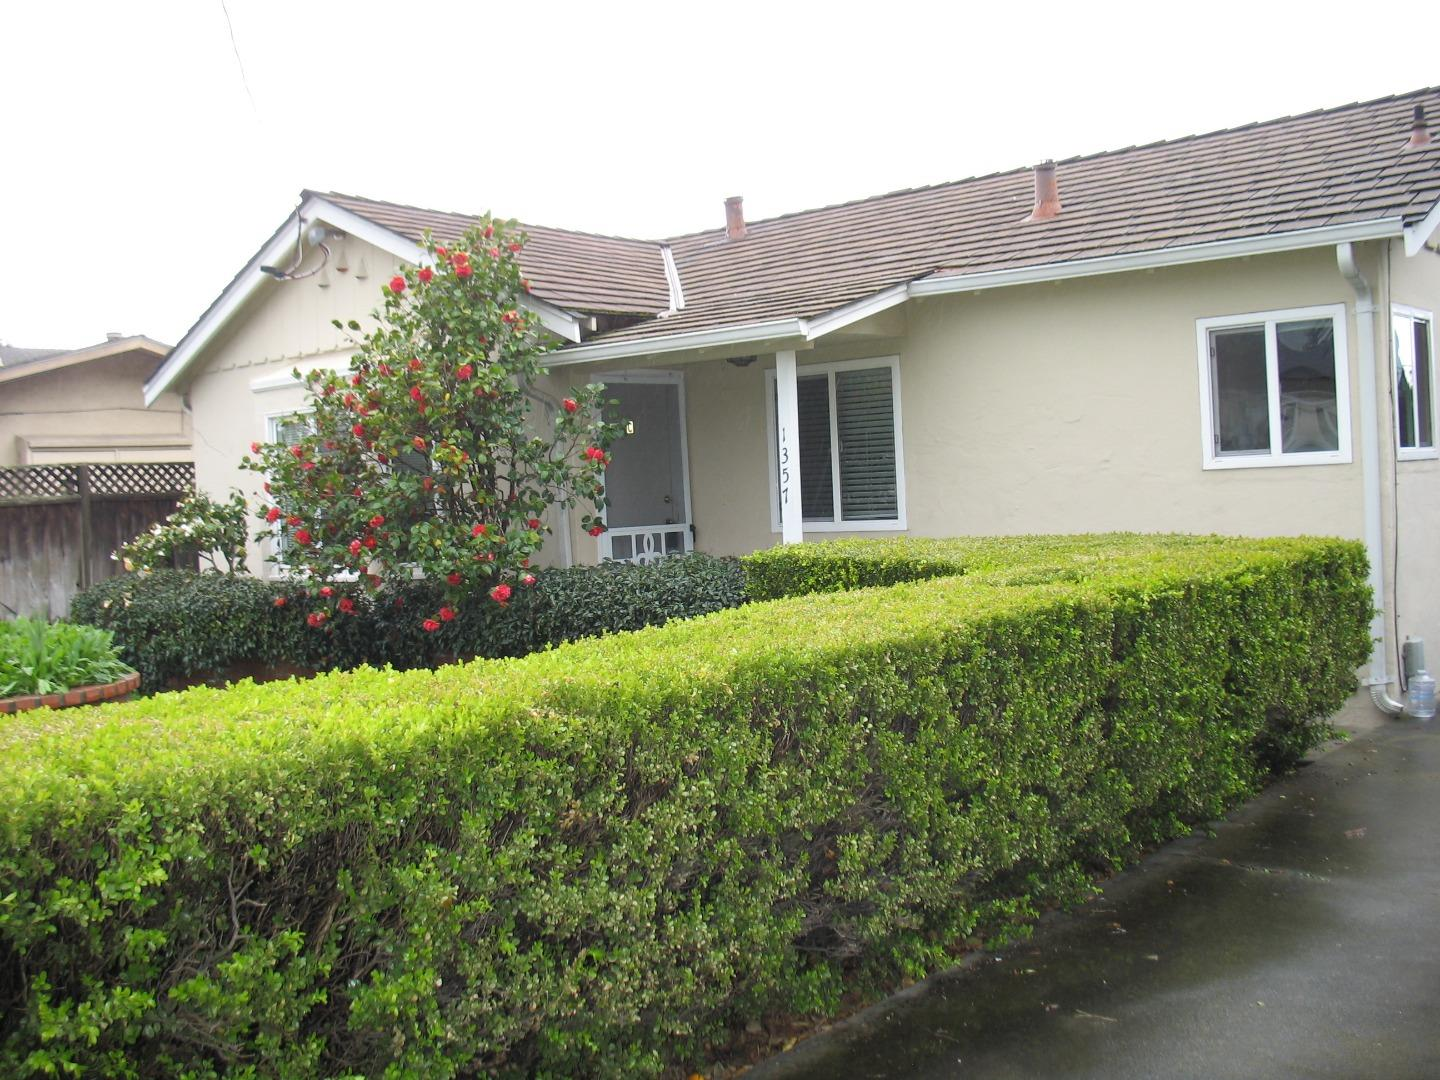 Single Family Home for Rent at 1357 Park Drive 1357 Park Drive Mountain View, California 94040 United States